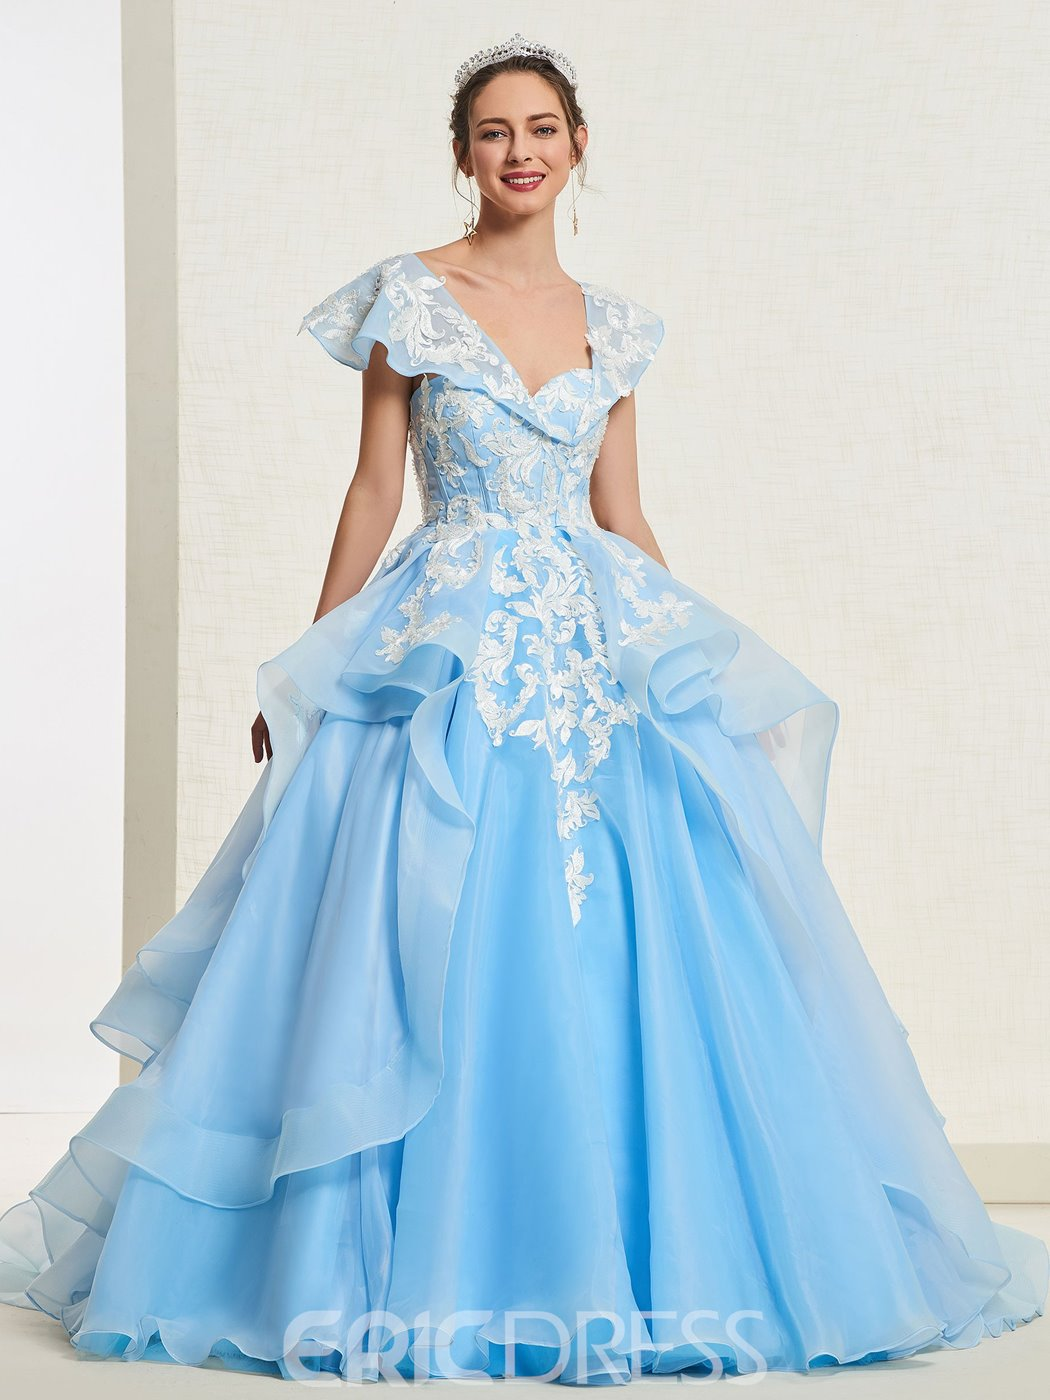 Ericdress Cap Sleeves Appliques Ball Gown Quinceanera Dress 2019